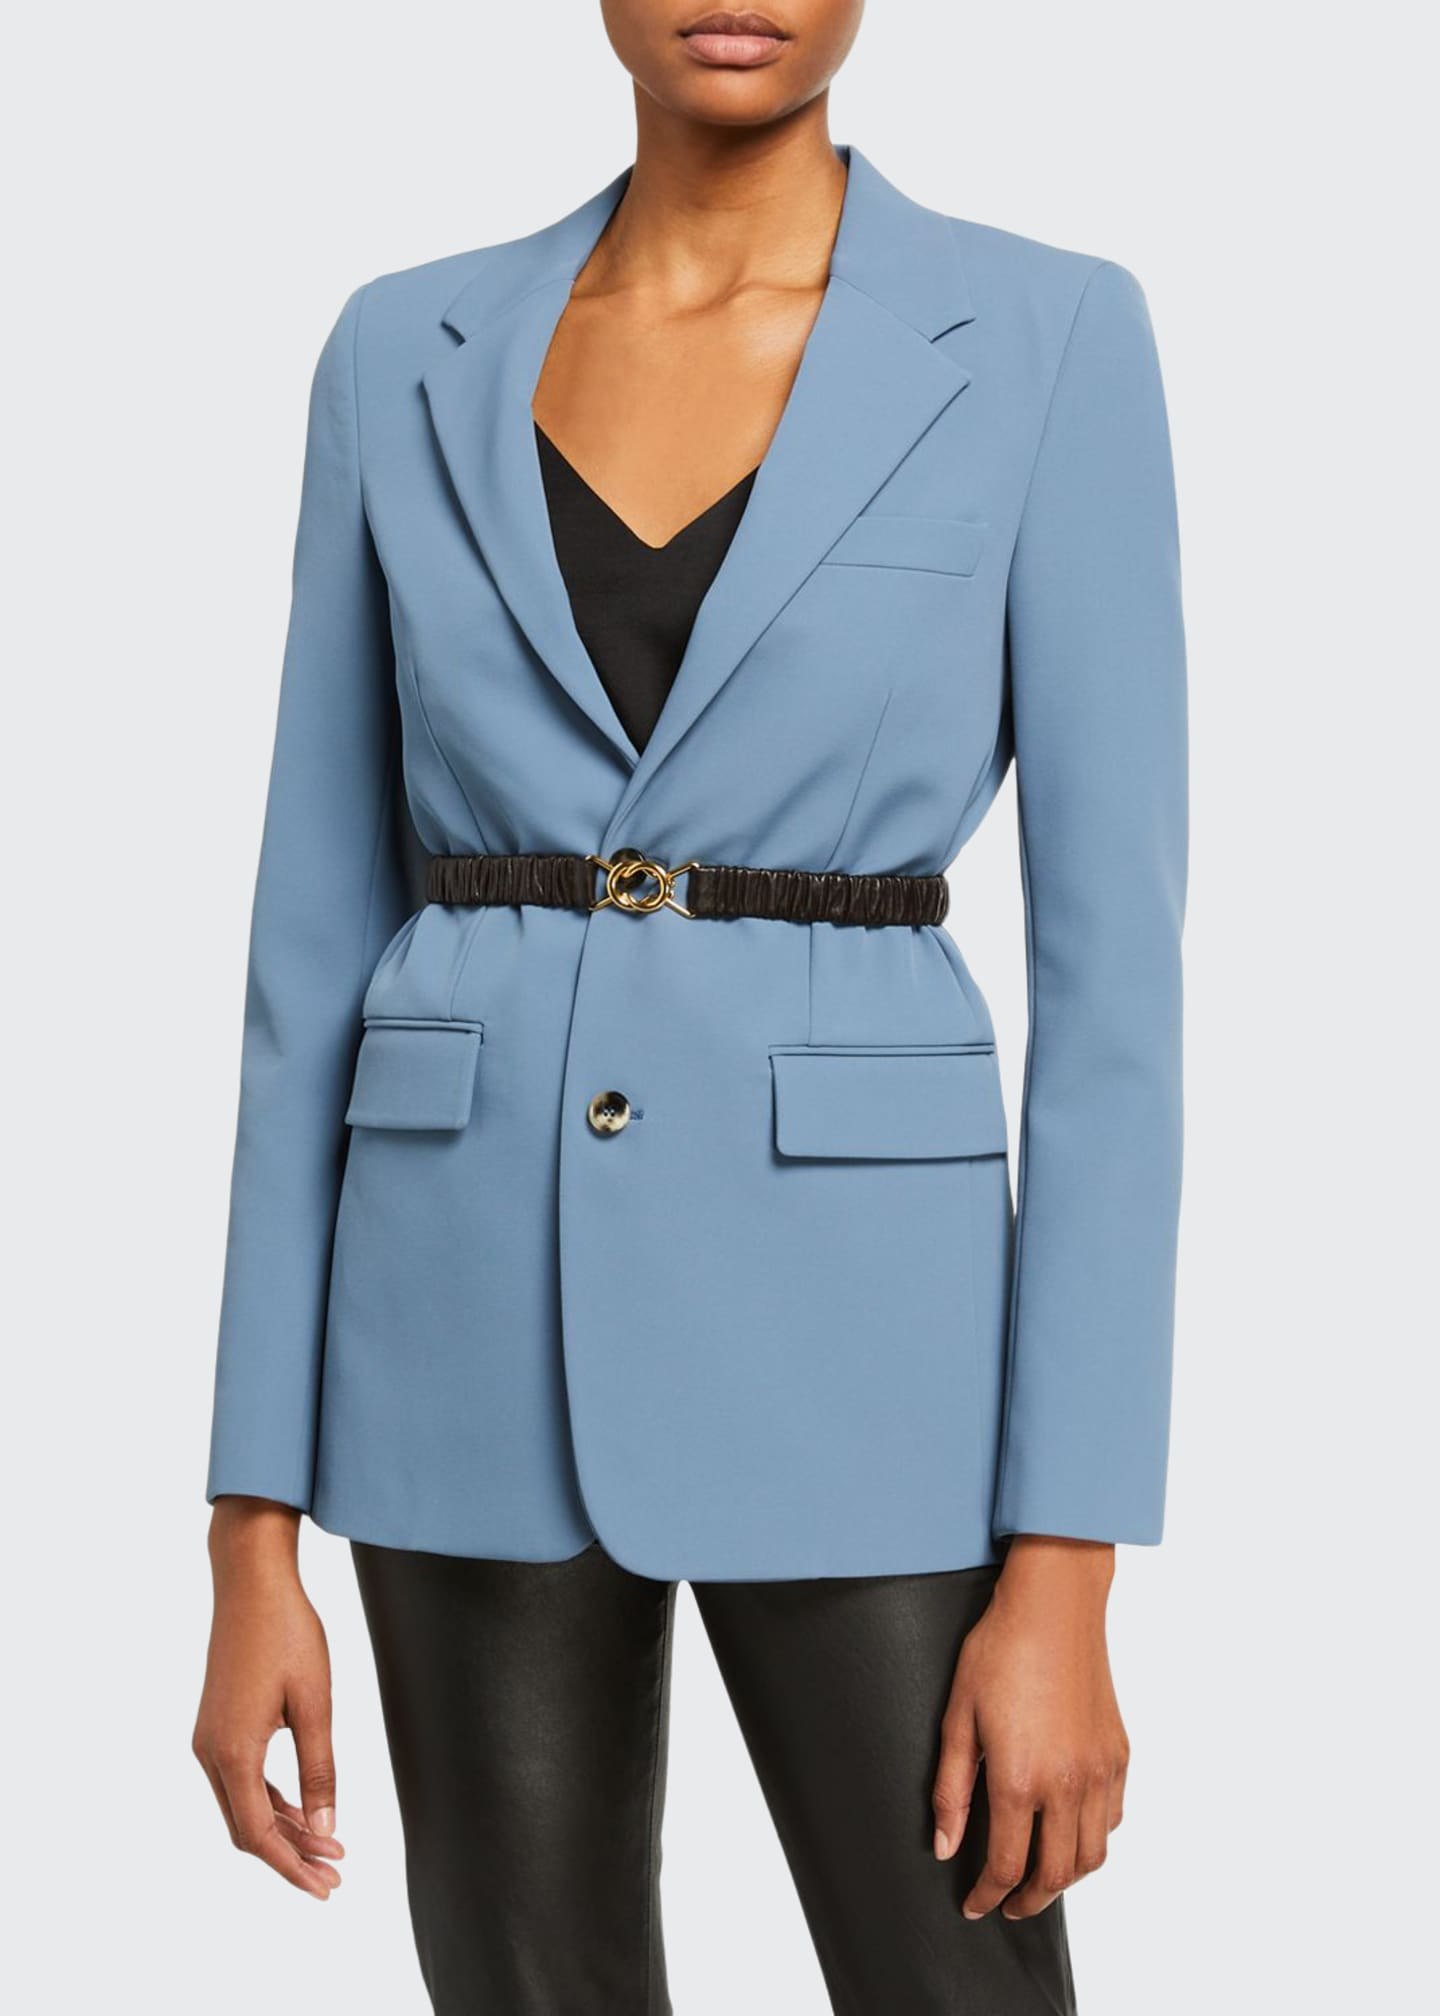 Bottega Veneta Crepe Blazer Jacket w/ removable Leather